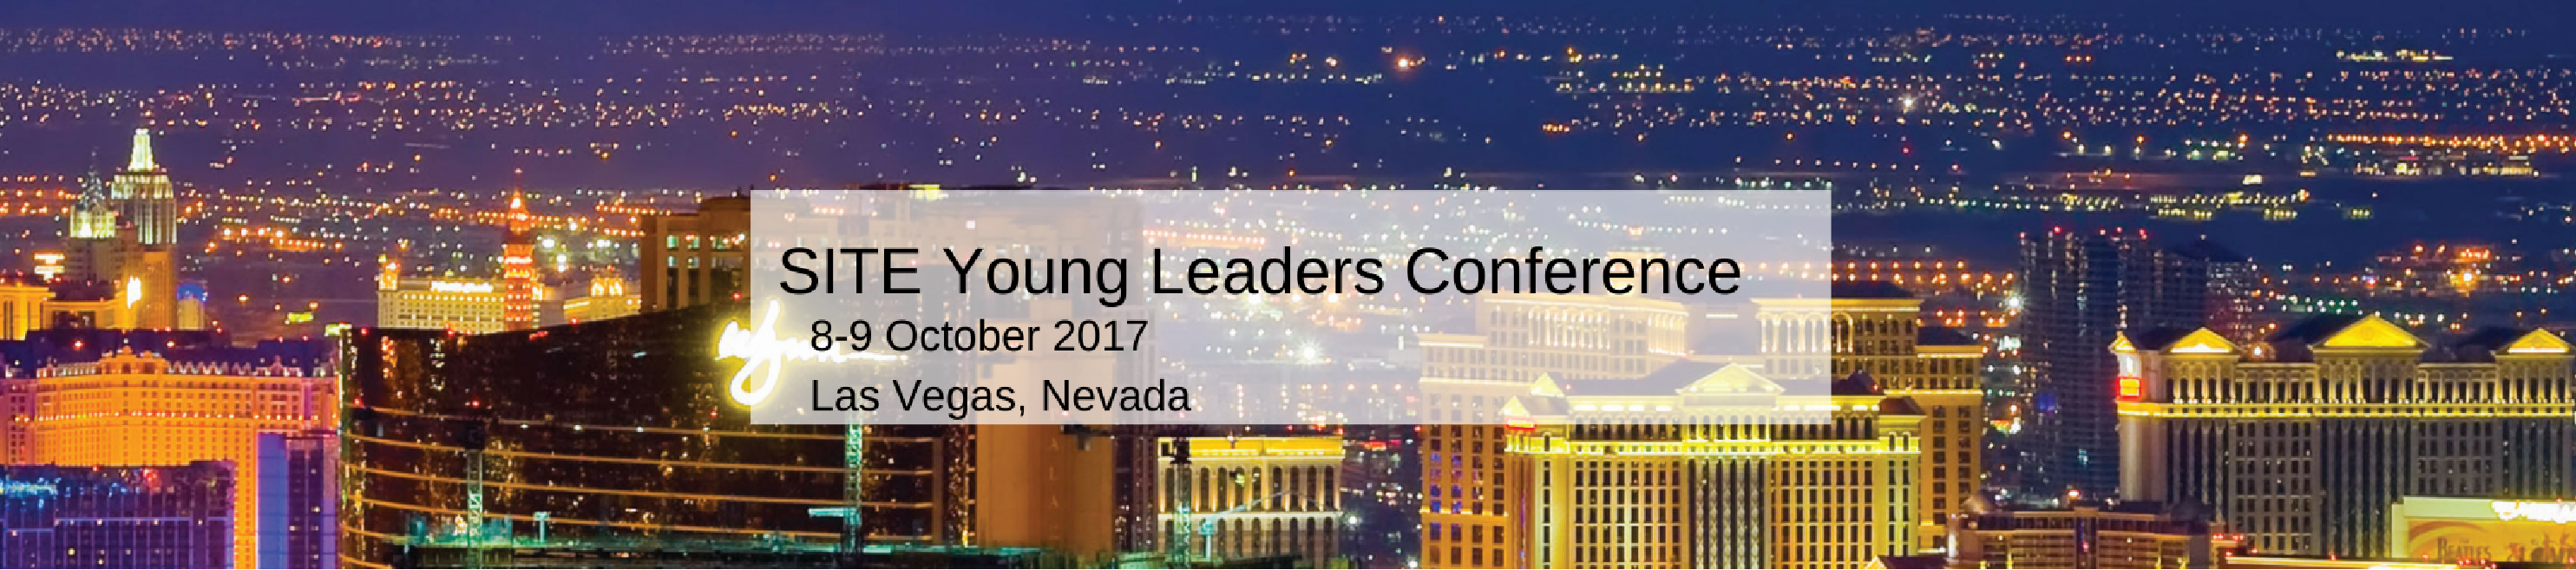 SITE Young Leaders Conference 2017